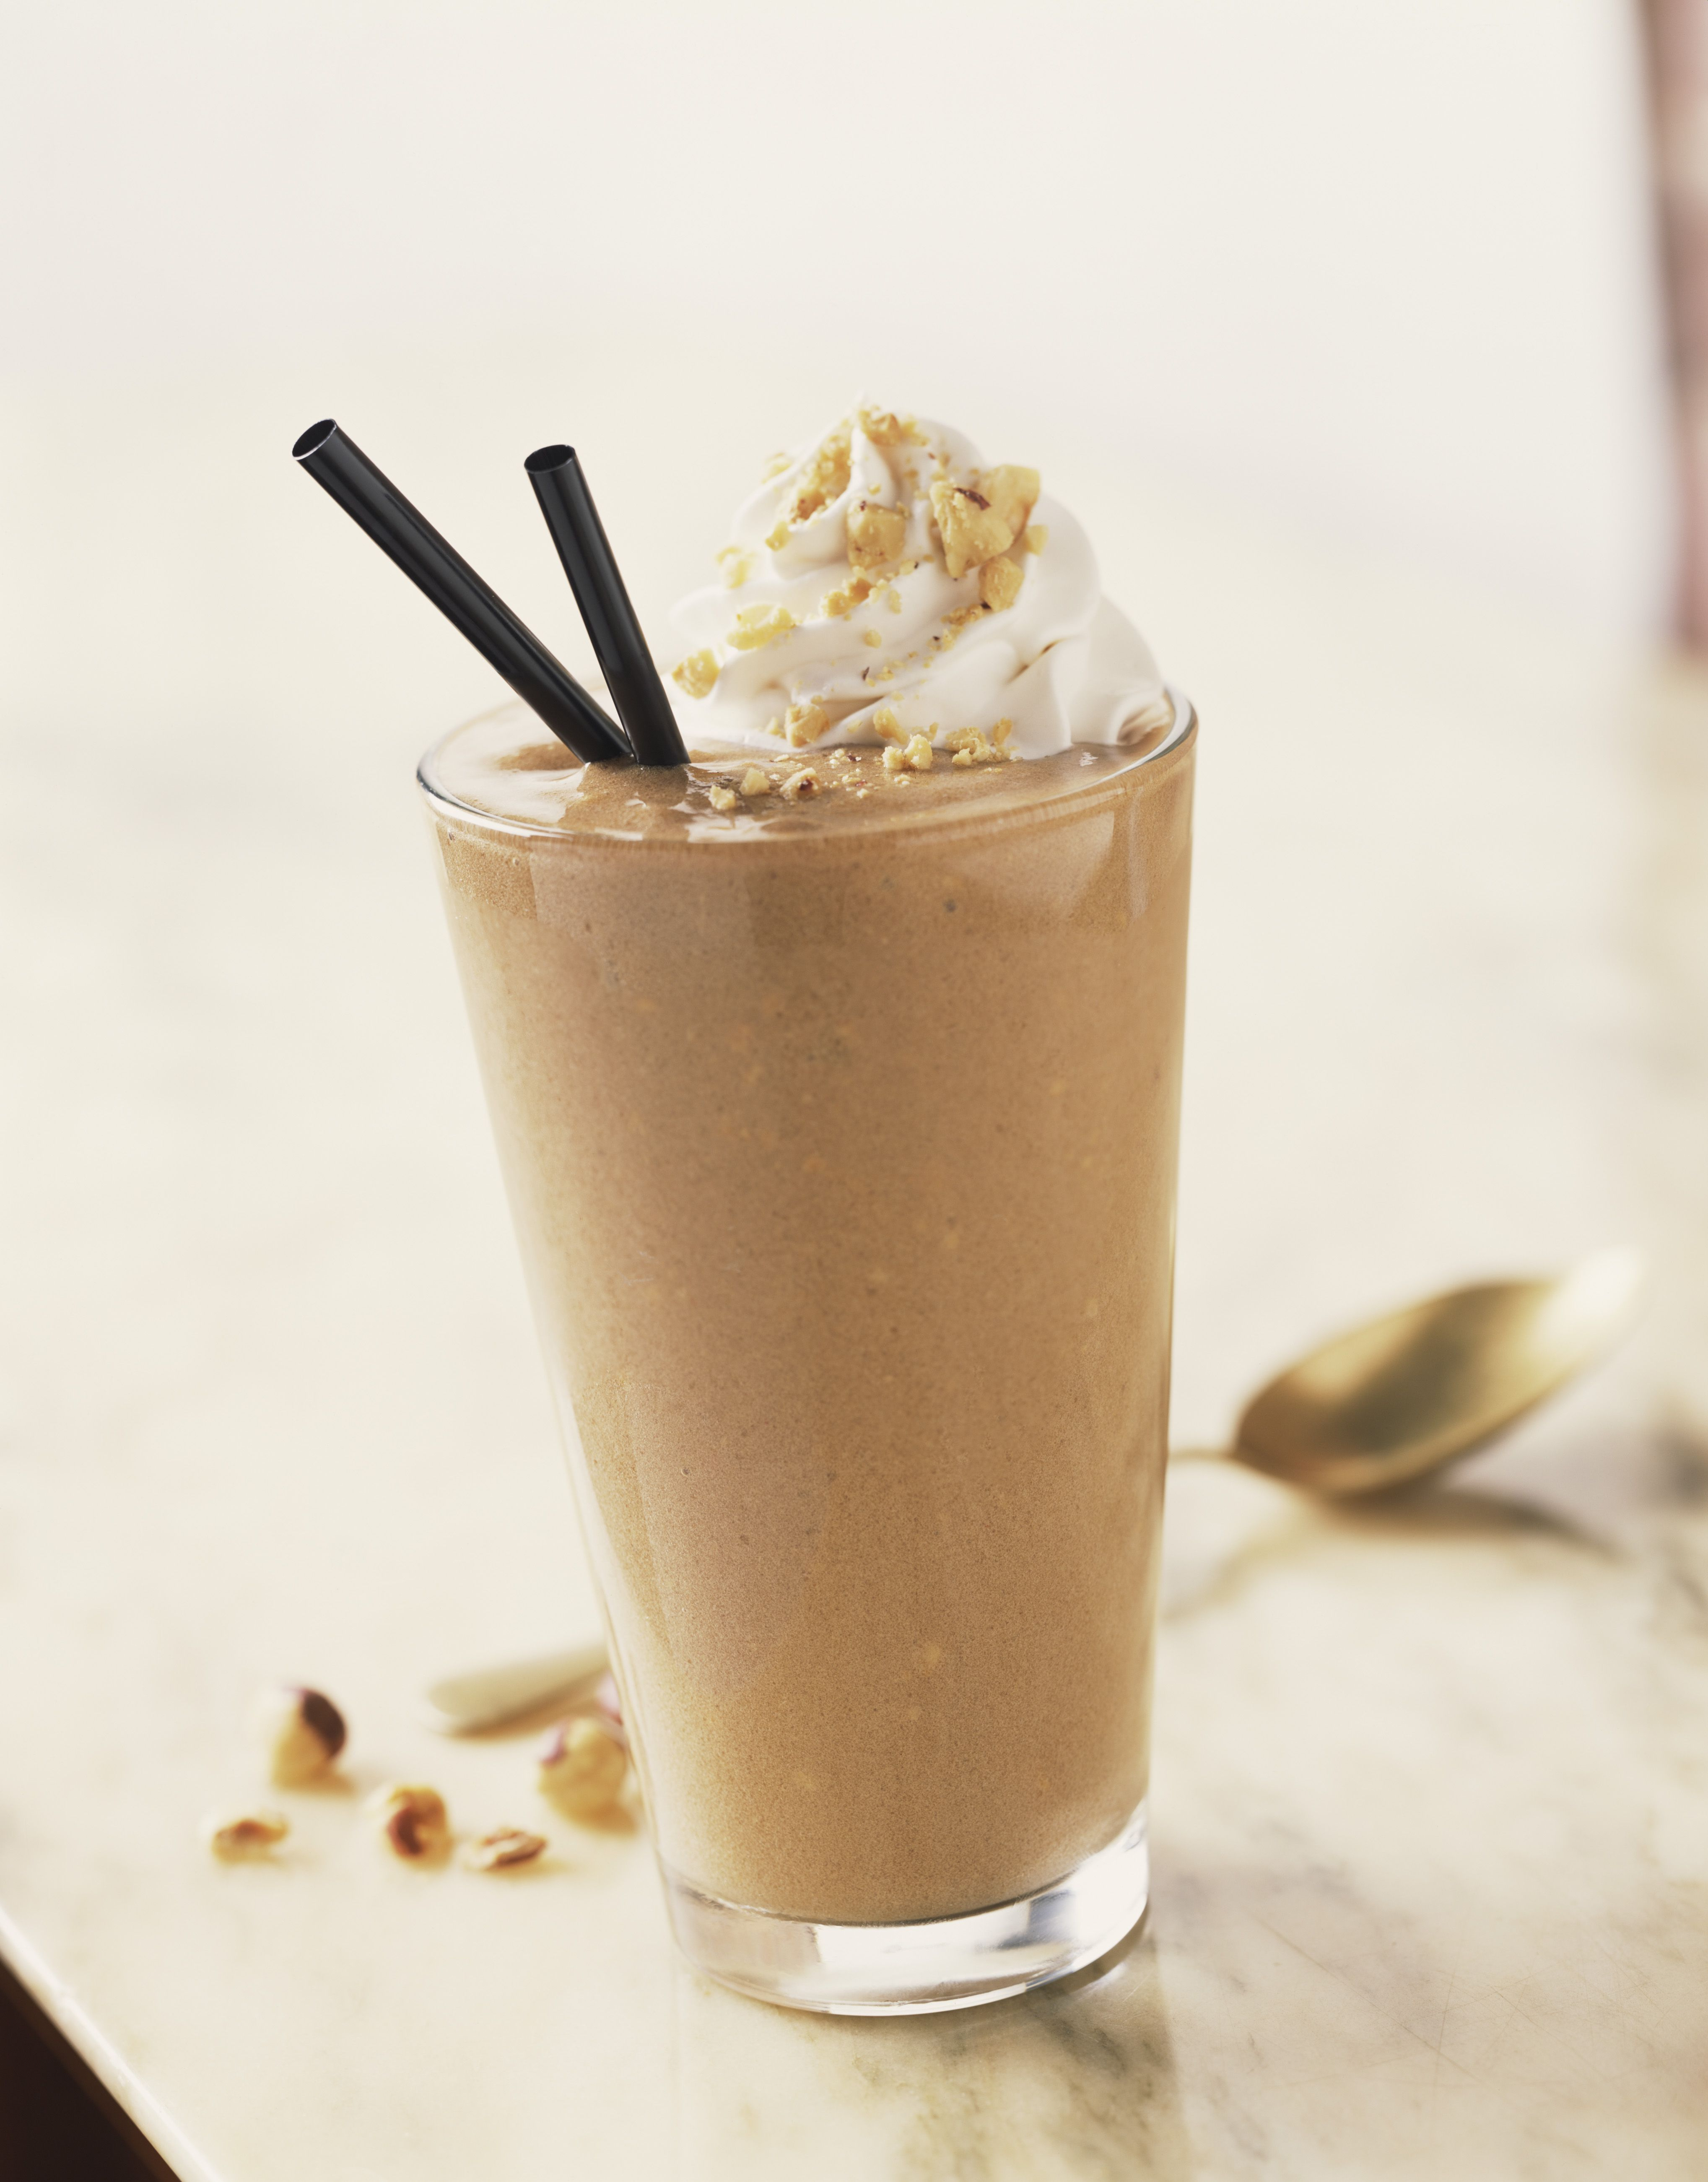 How to Make Greek Frappe Coffee